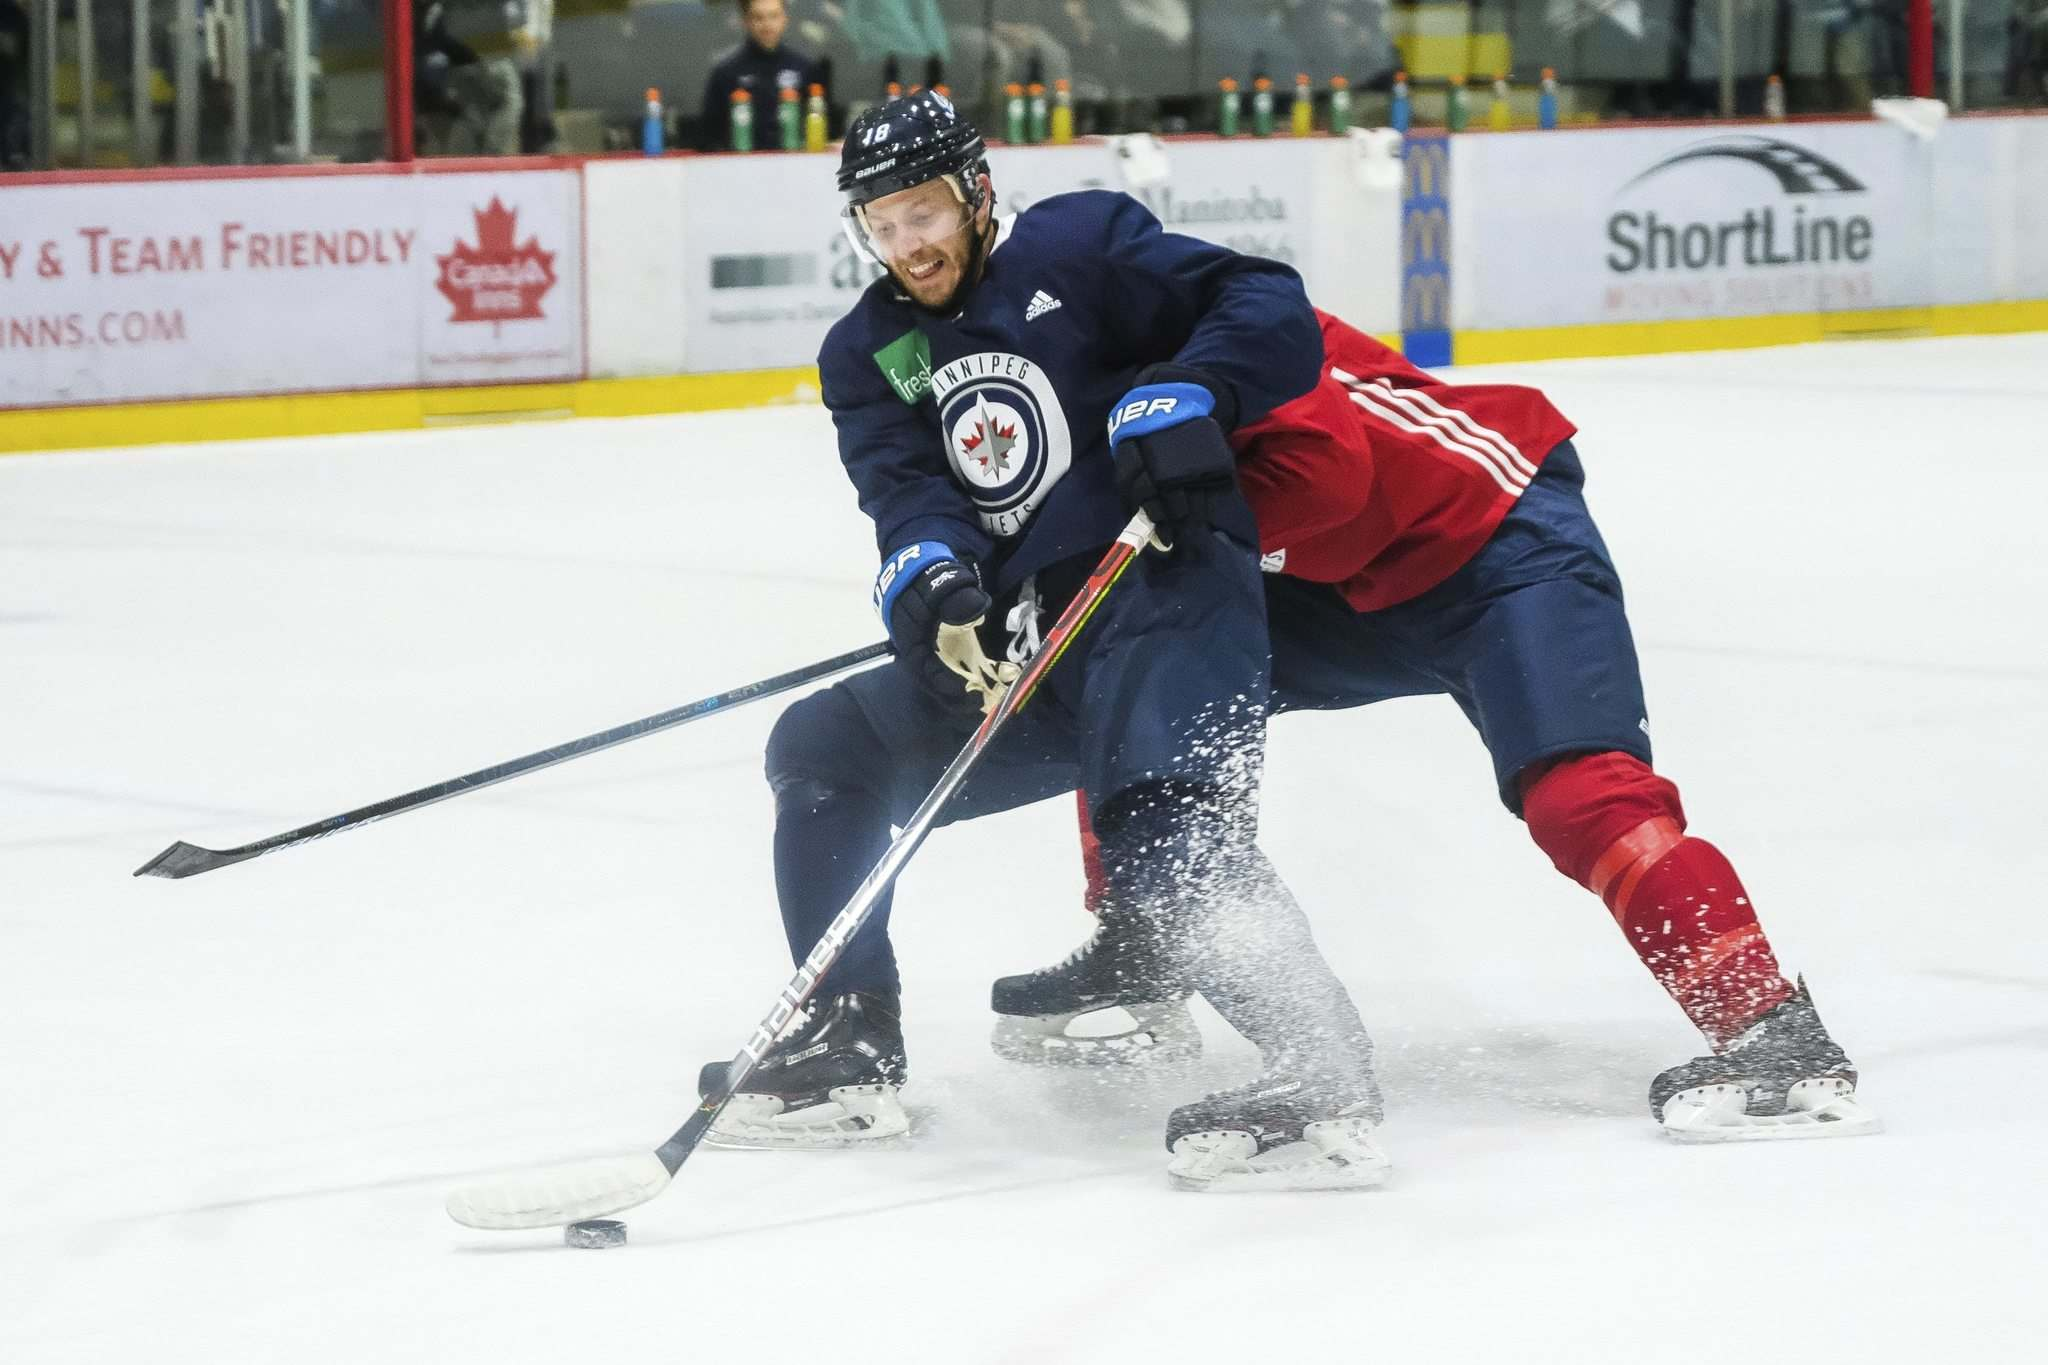 DANIEL CRUMP / WINNIPEG FREE PRESS</p><p>Jets forward Bryan Little handles the puck during a training camp session on Saturday at the Iceplex. Training camp continues today before the team heads to Edmonton for a pre-season tilt against the Oilers.</p></p>